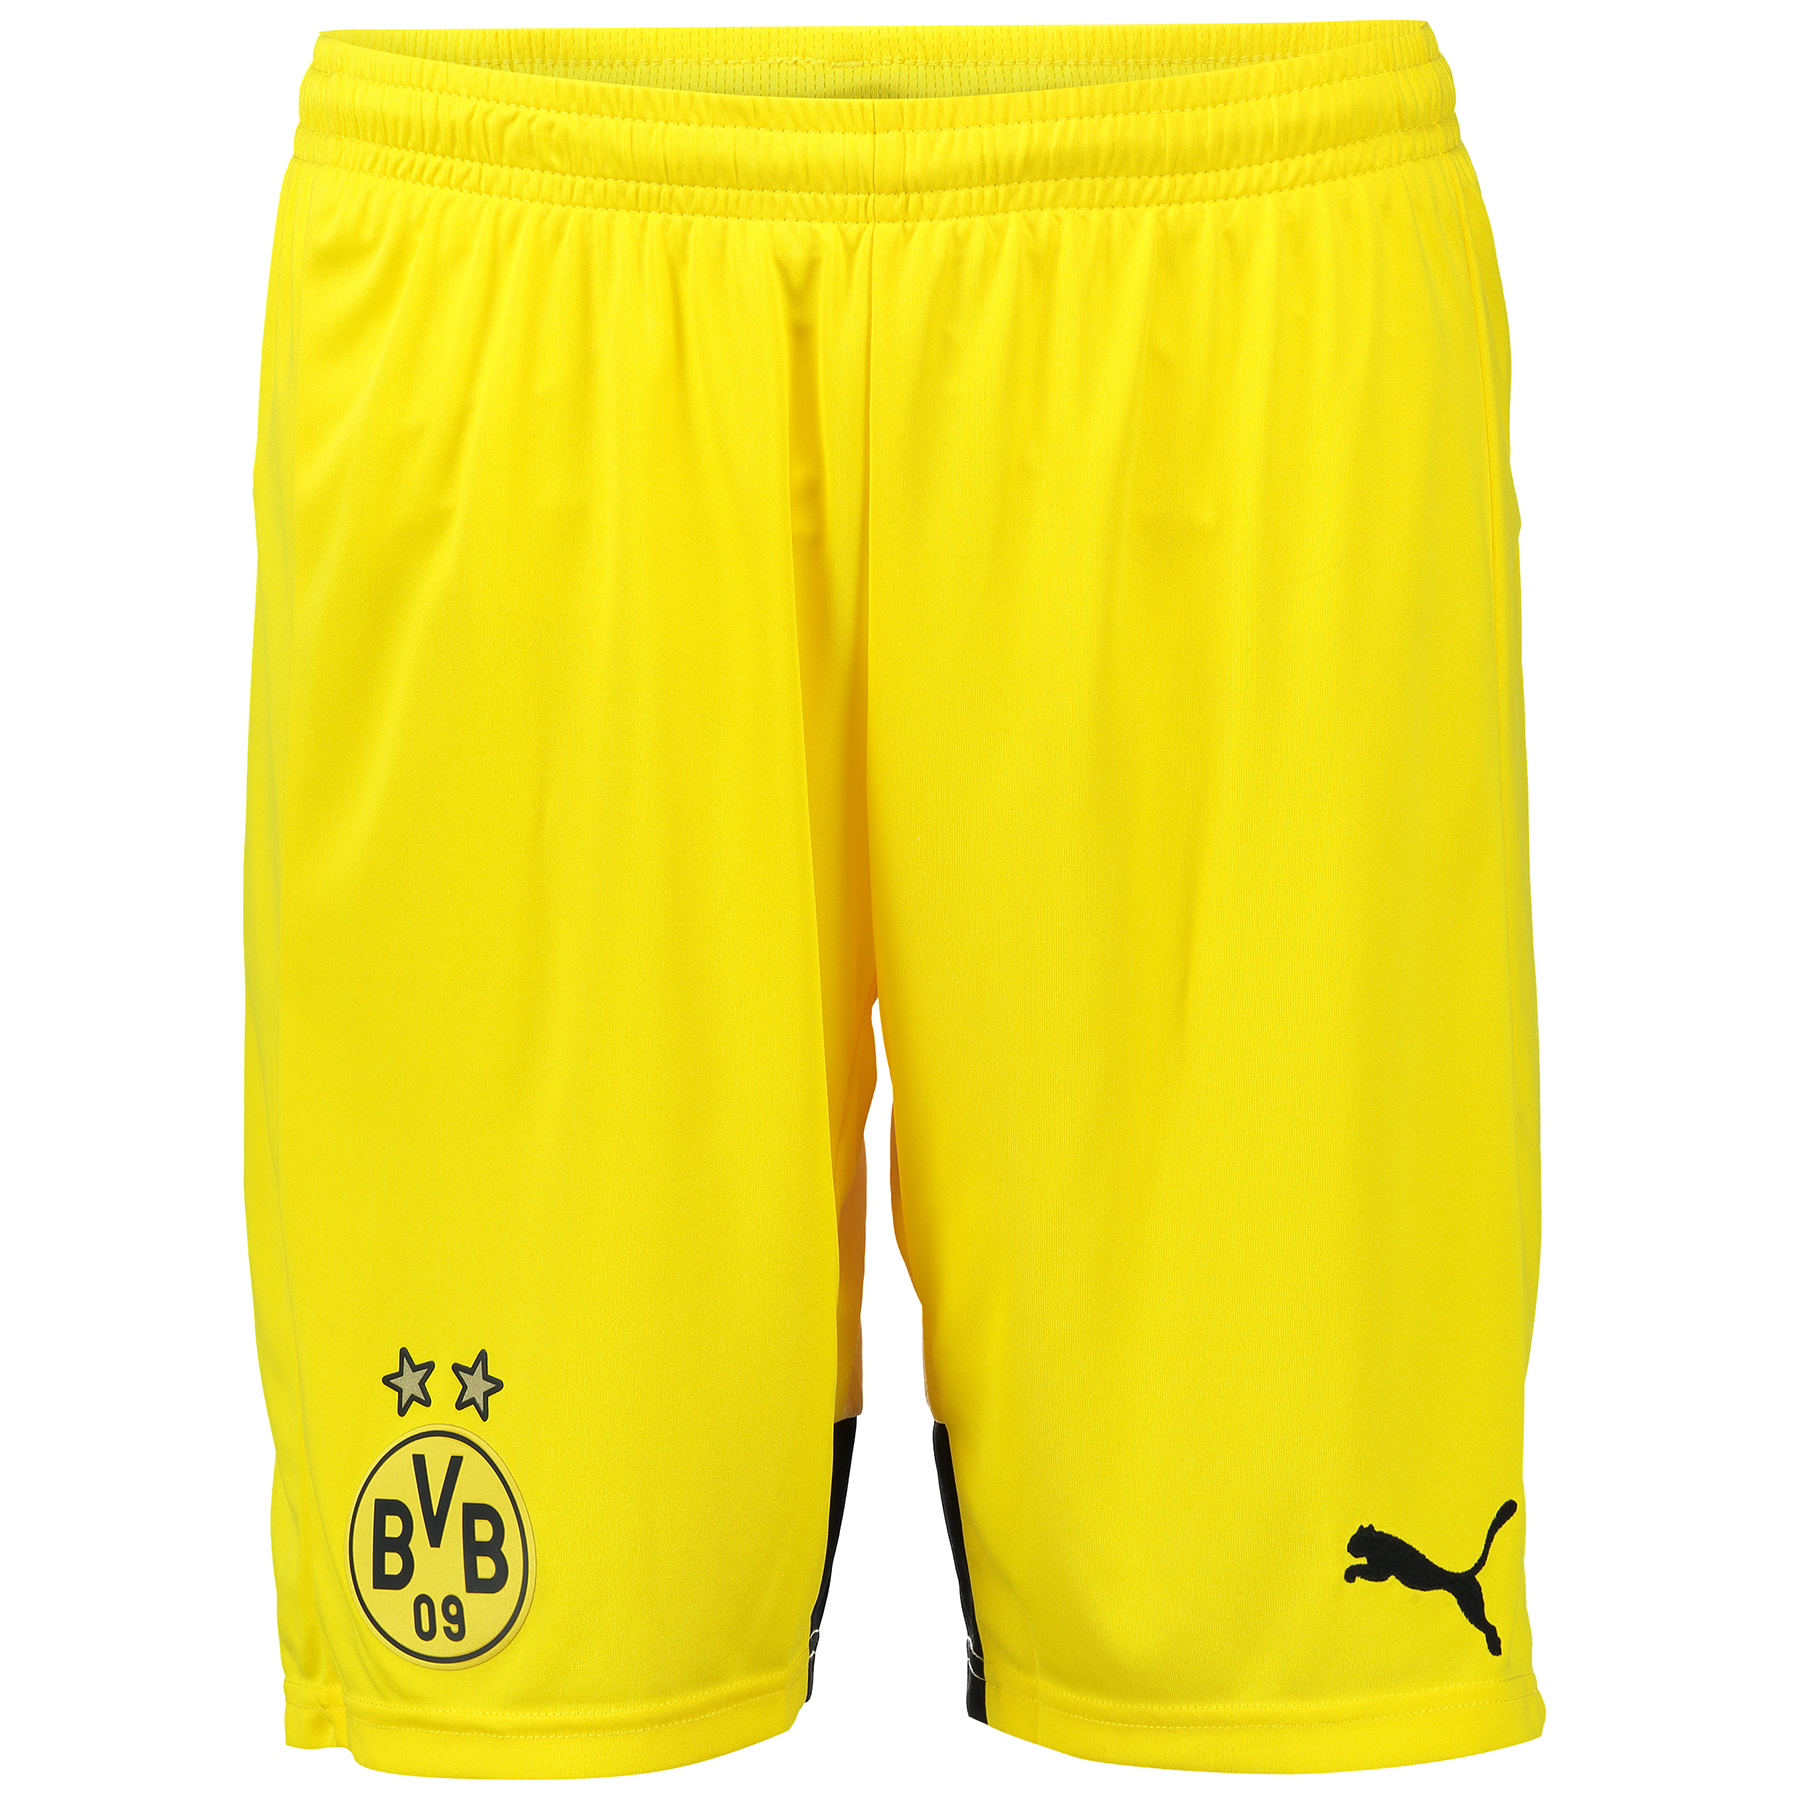 BVB Ambassador Home Shorts 2015/16 - Kids Yellow